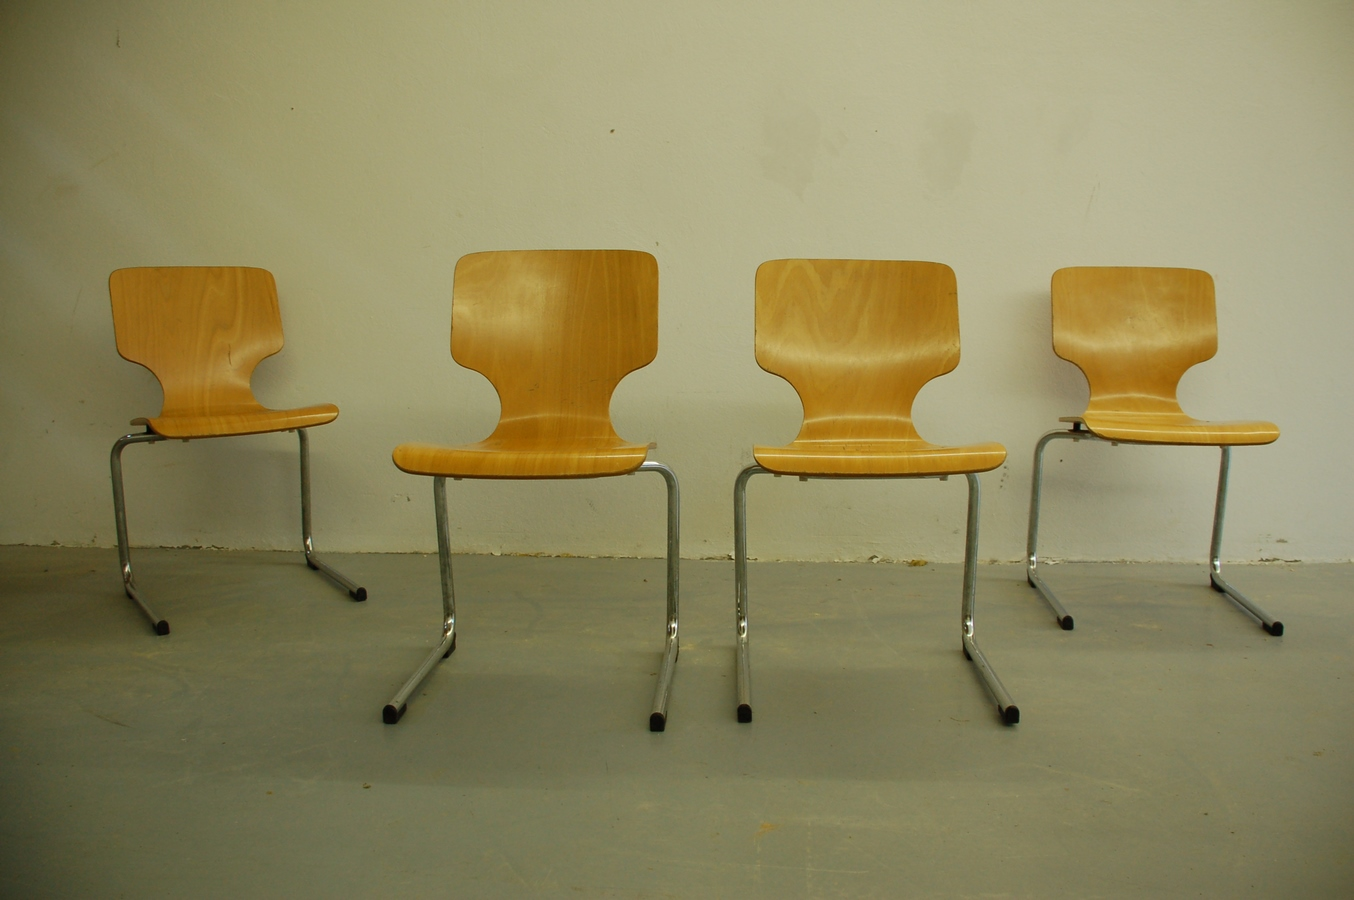 Vintage Freischwinger Stuhle Used Chairs Mid Century Modern 7 A